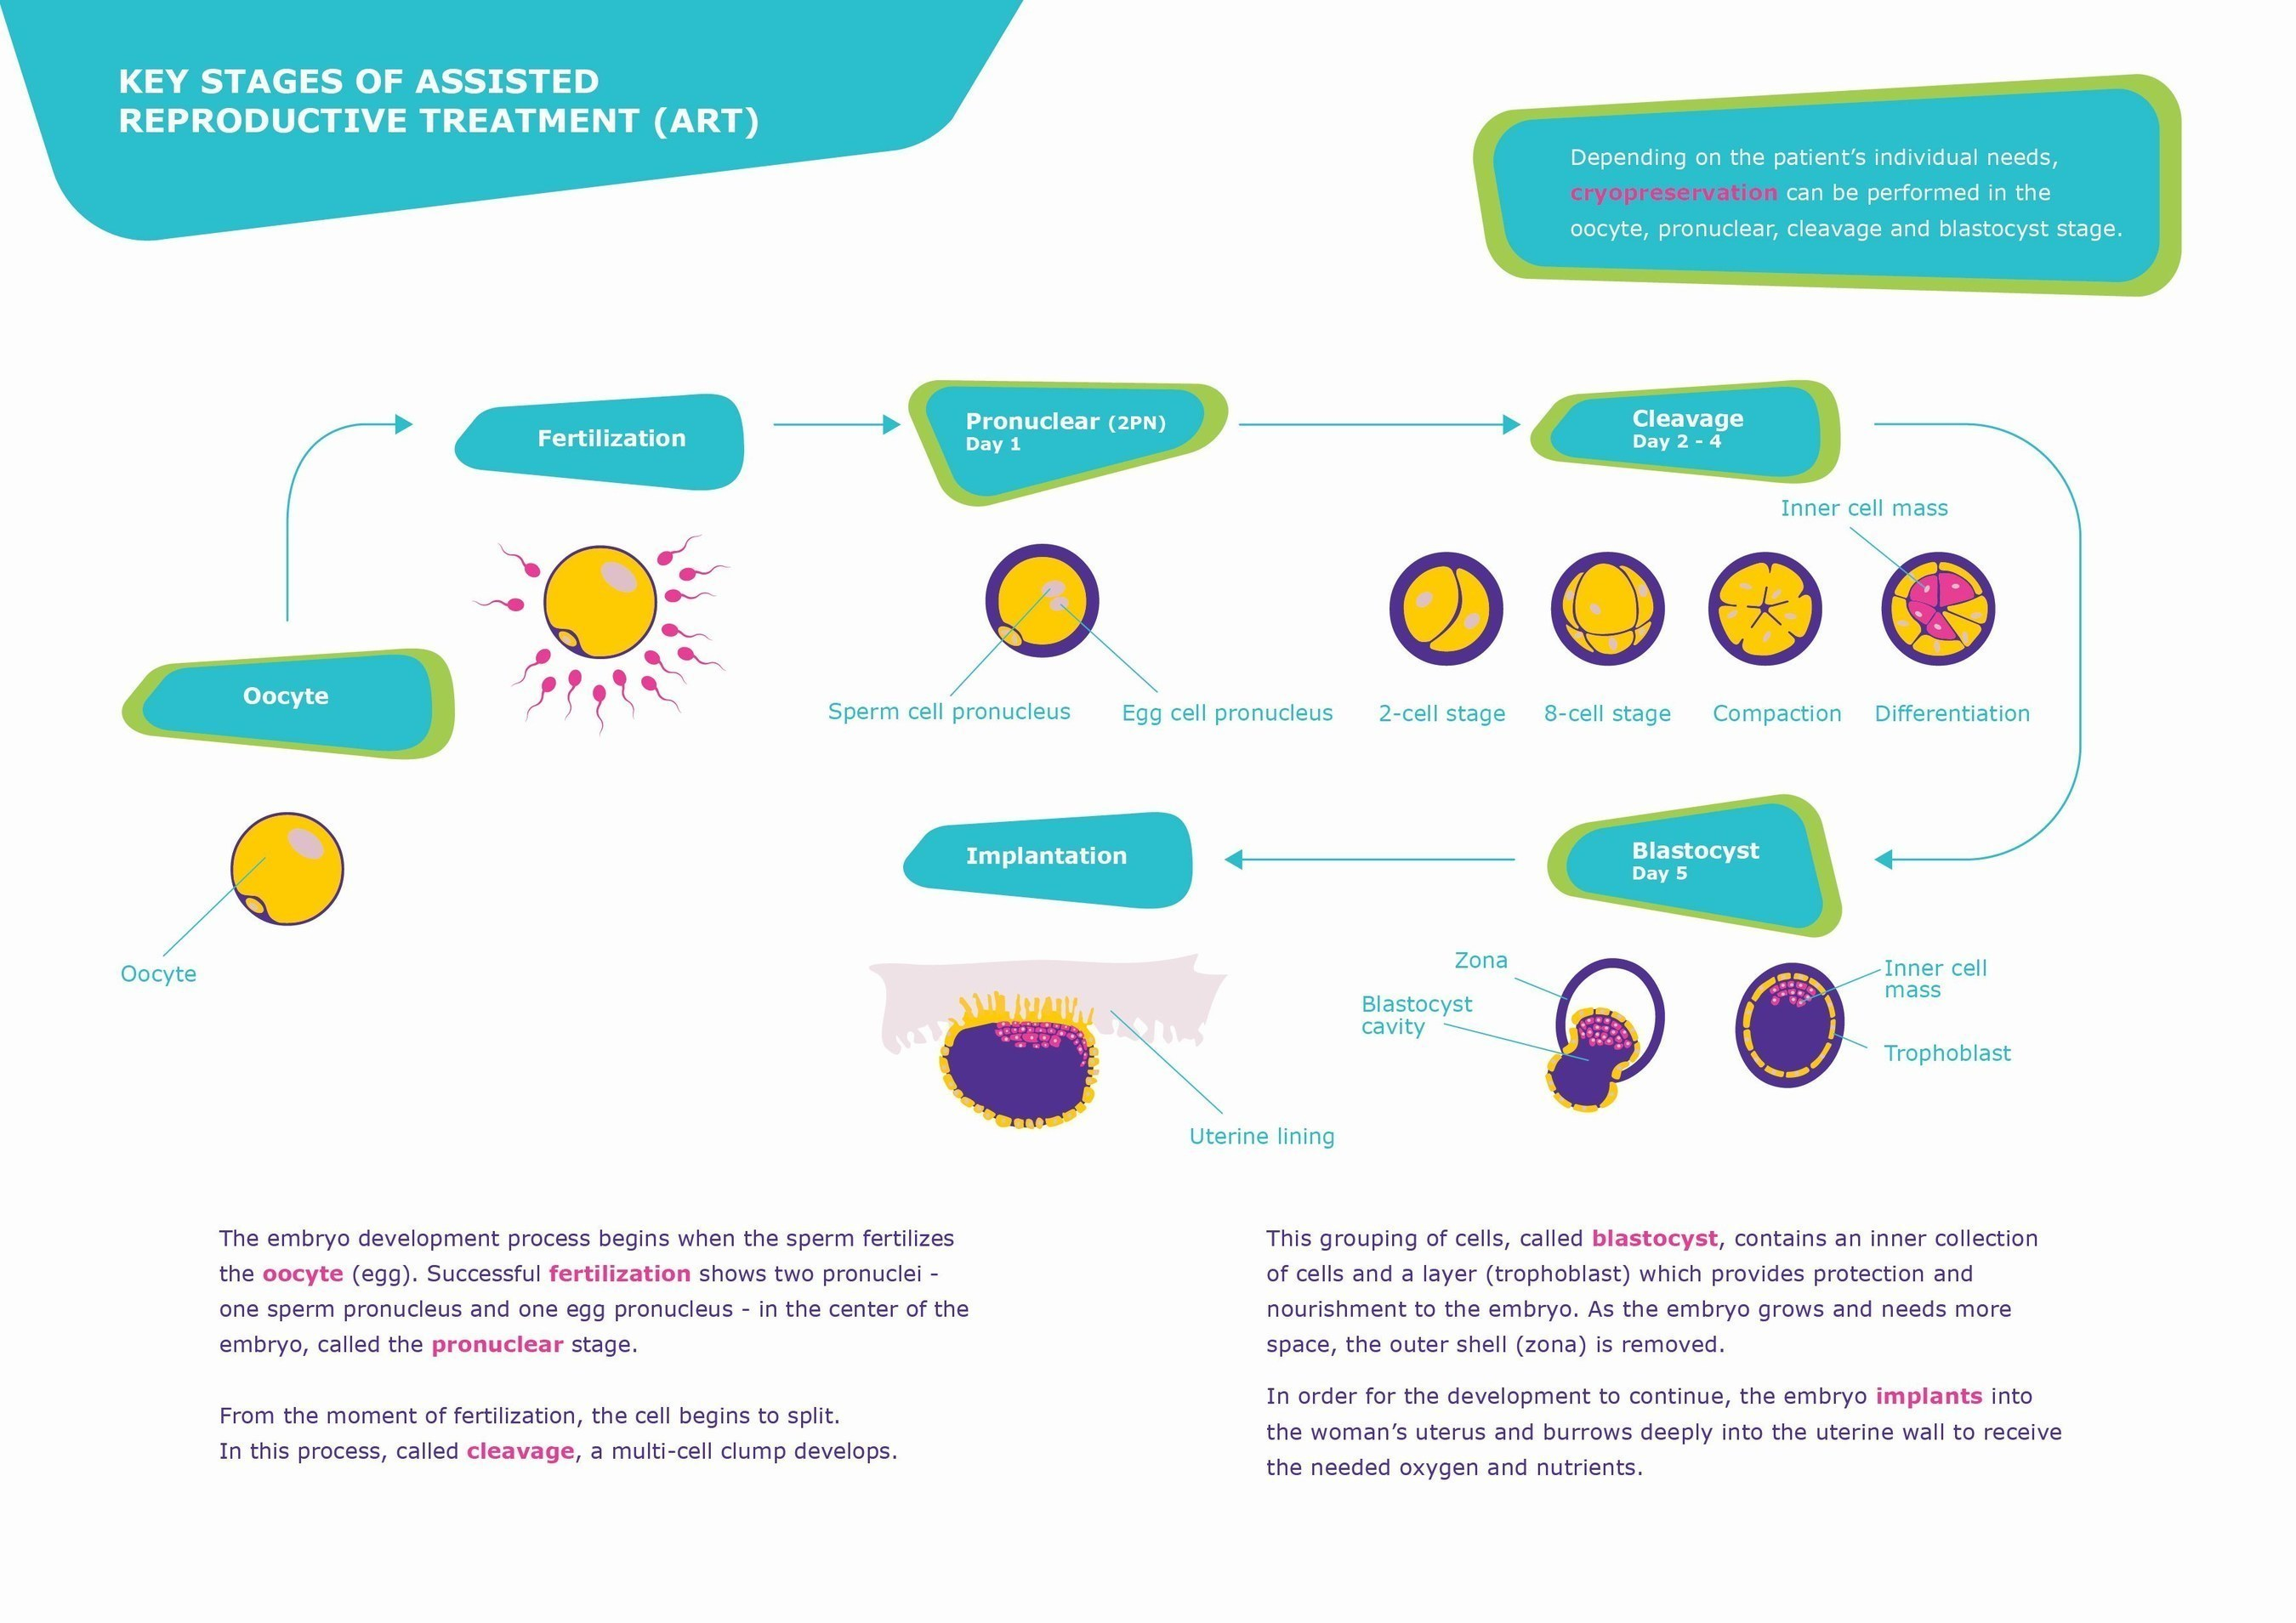 Key stages of Assisted Reproductive Treatment (ART) highlighting cryopreservation (PRNewsFoto/Merck)